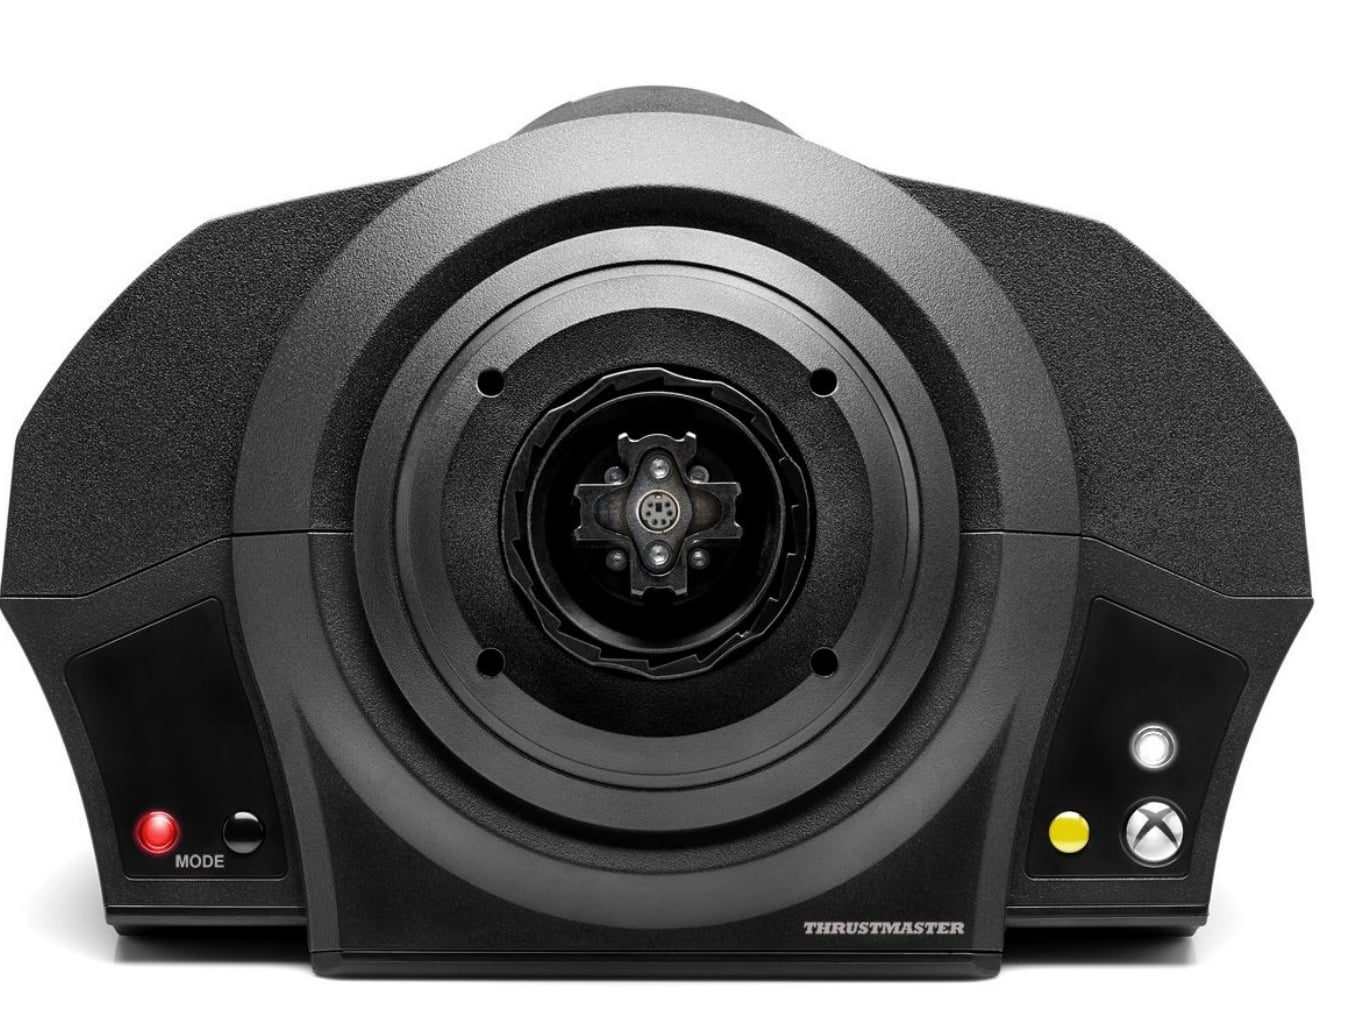 Thrustmaster TX Servo Wheel Base